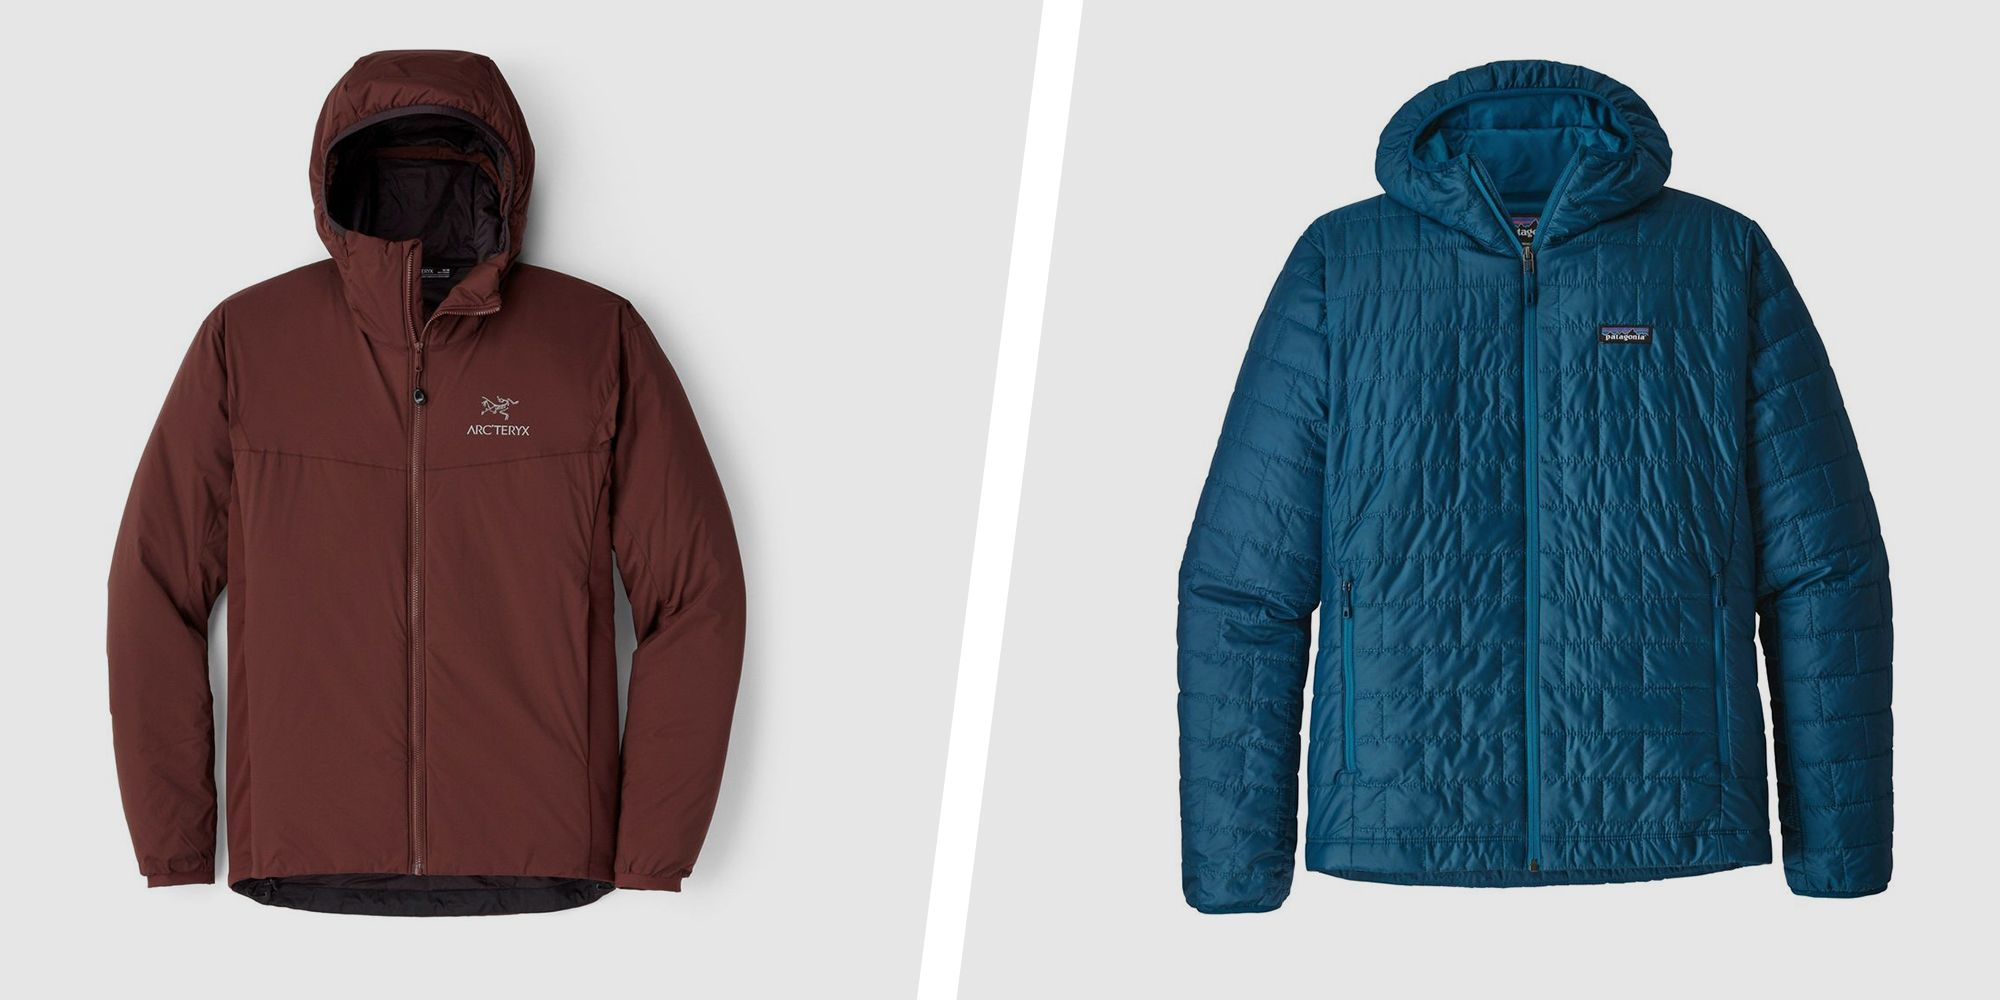 6 Warm Jackets to Score on Sale at REI Right Now